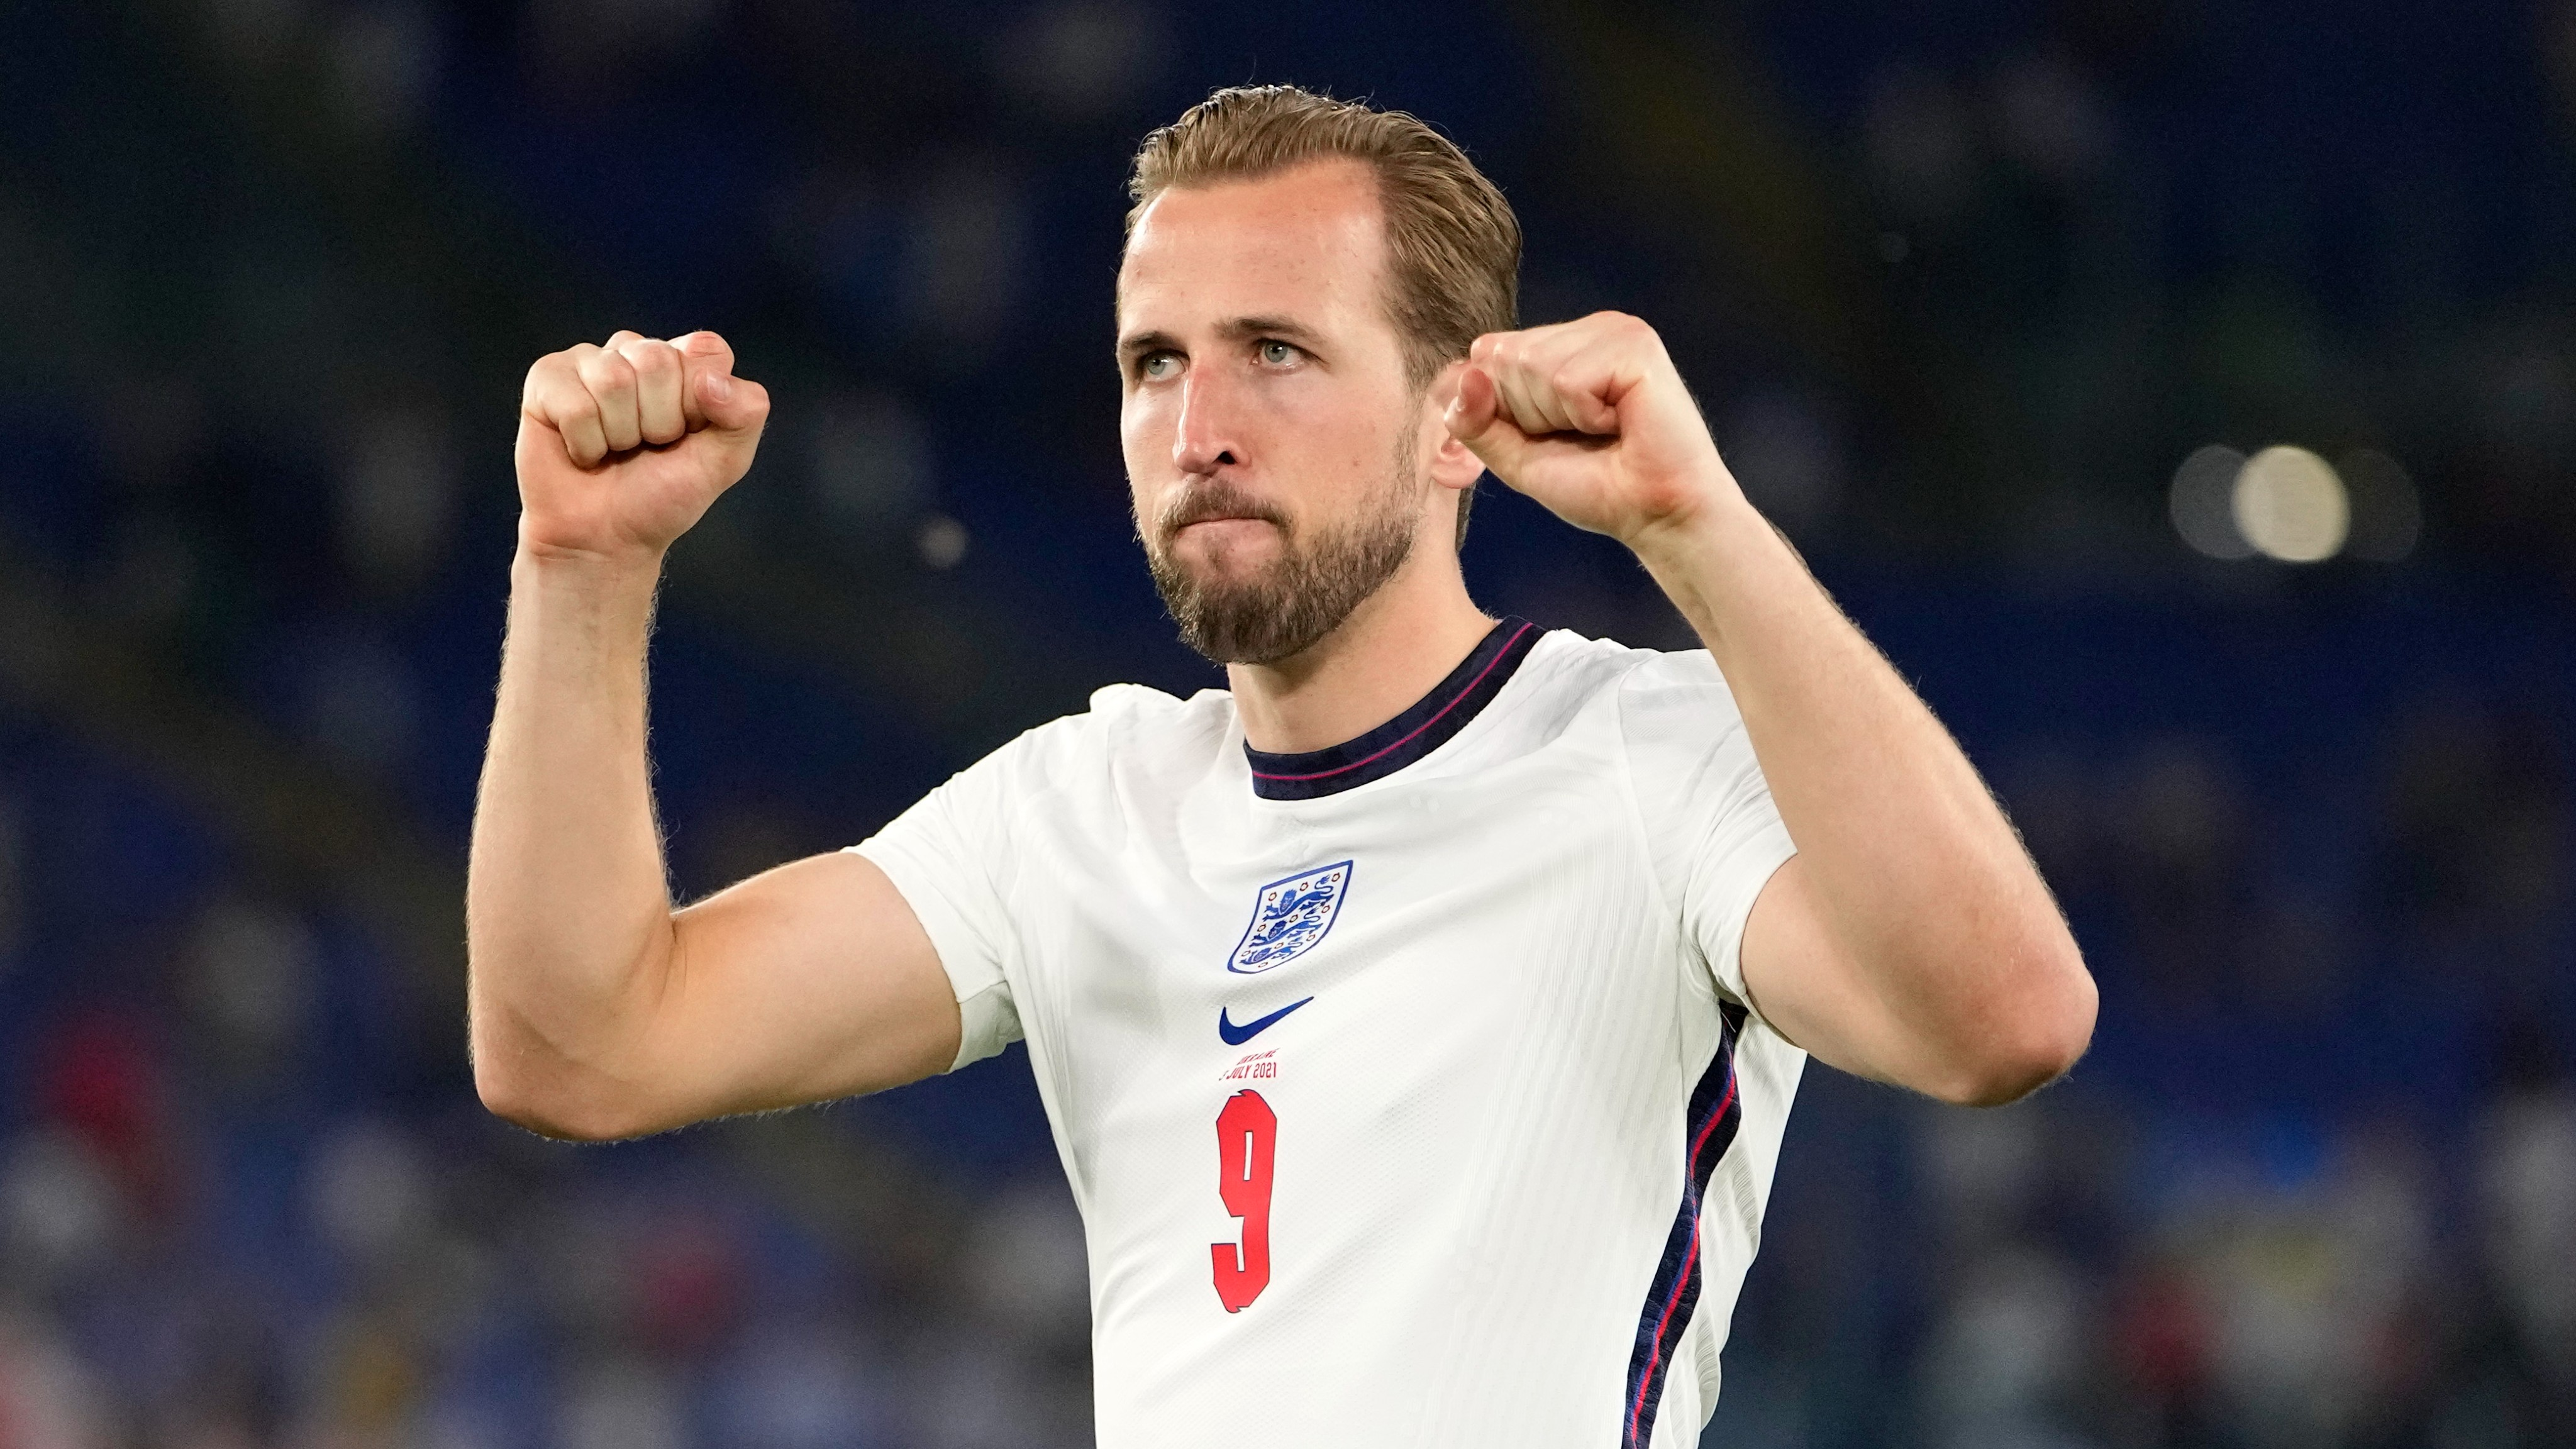 Matchday LIVE: England vs Denmark updates, news and TV reaction